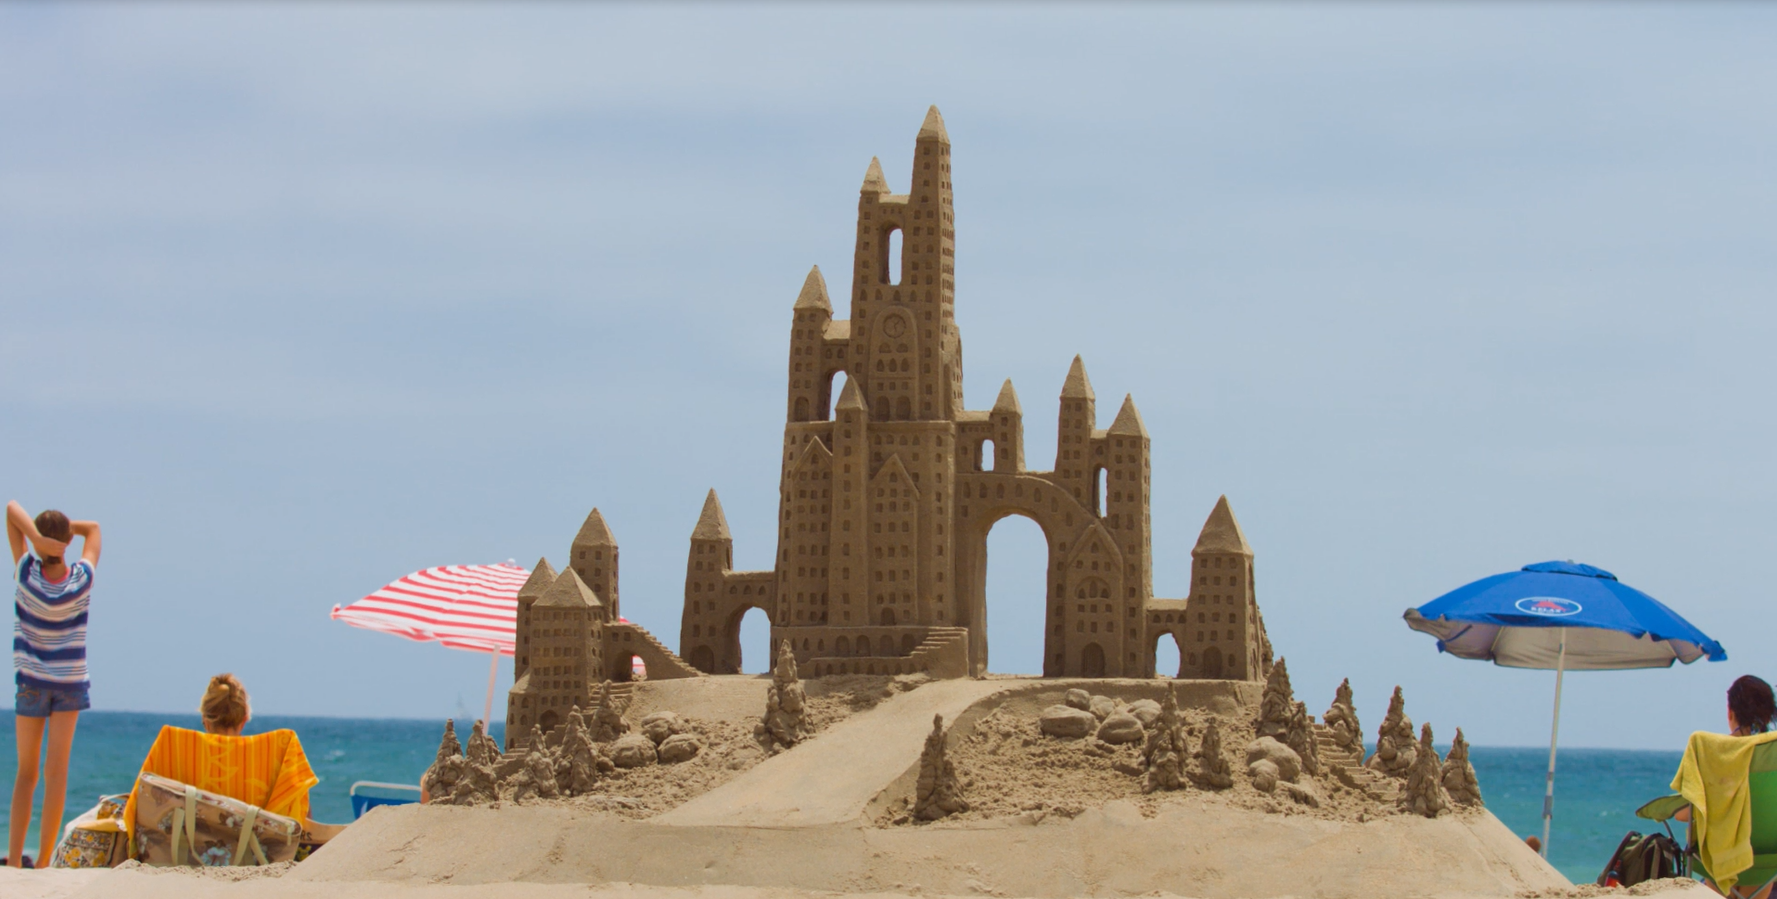 California Sandcastle Contests And Festivals California Beaches - The 10 coolest sandcastle competitions in the world